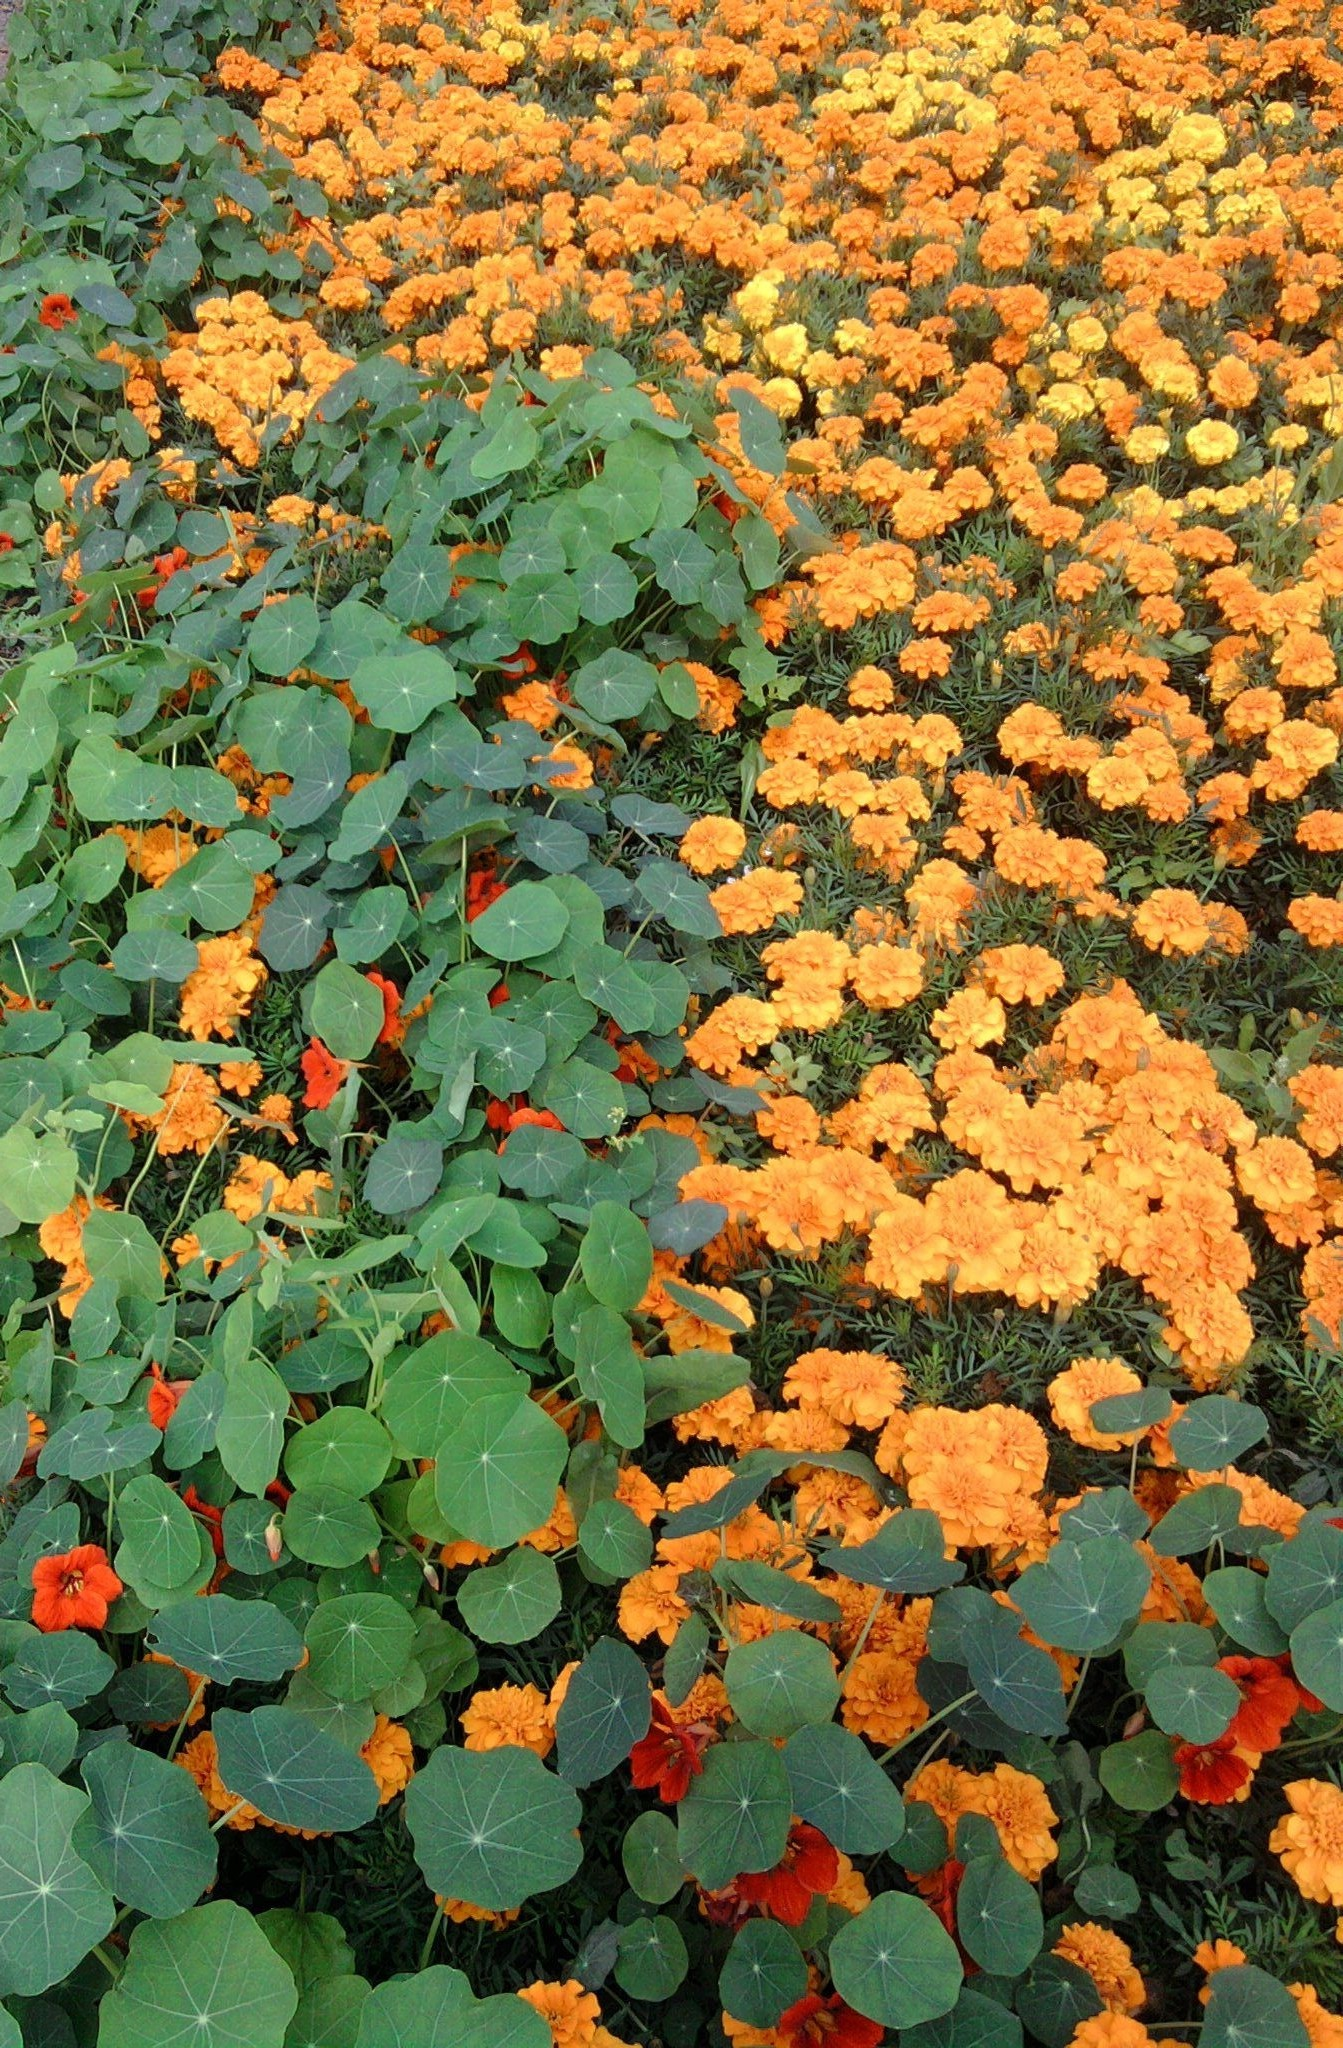 Nasturtium and marigolds